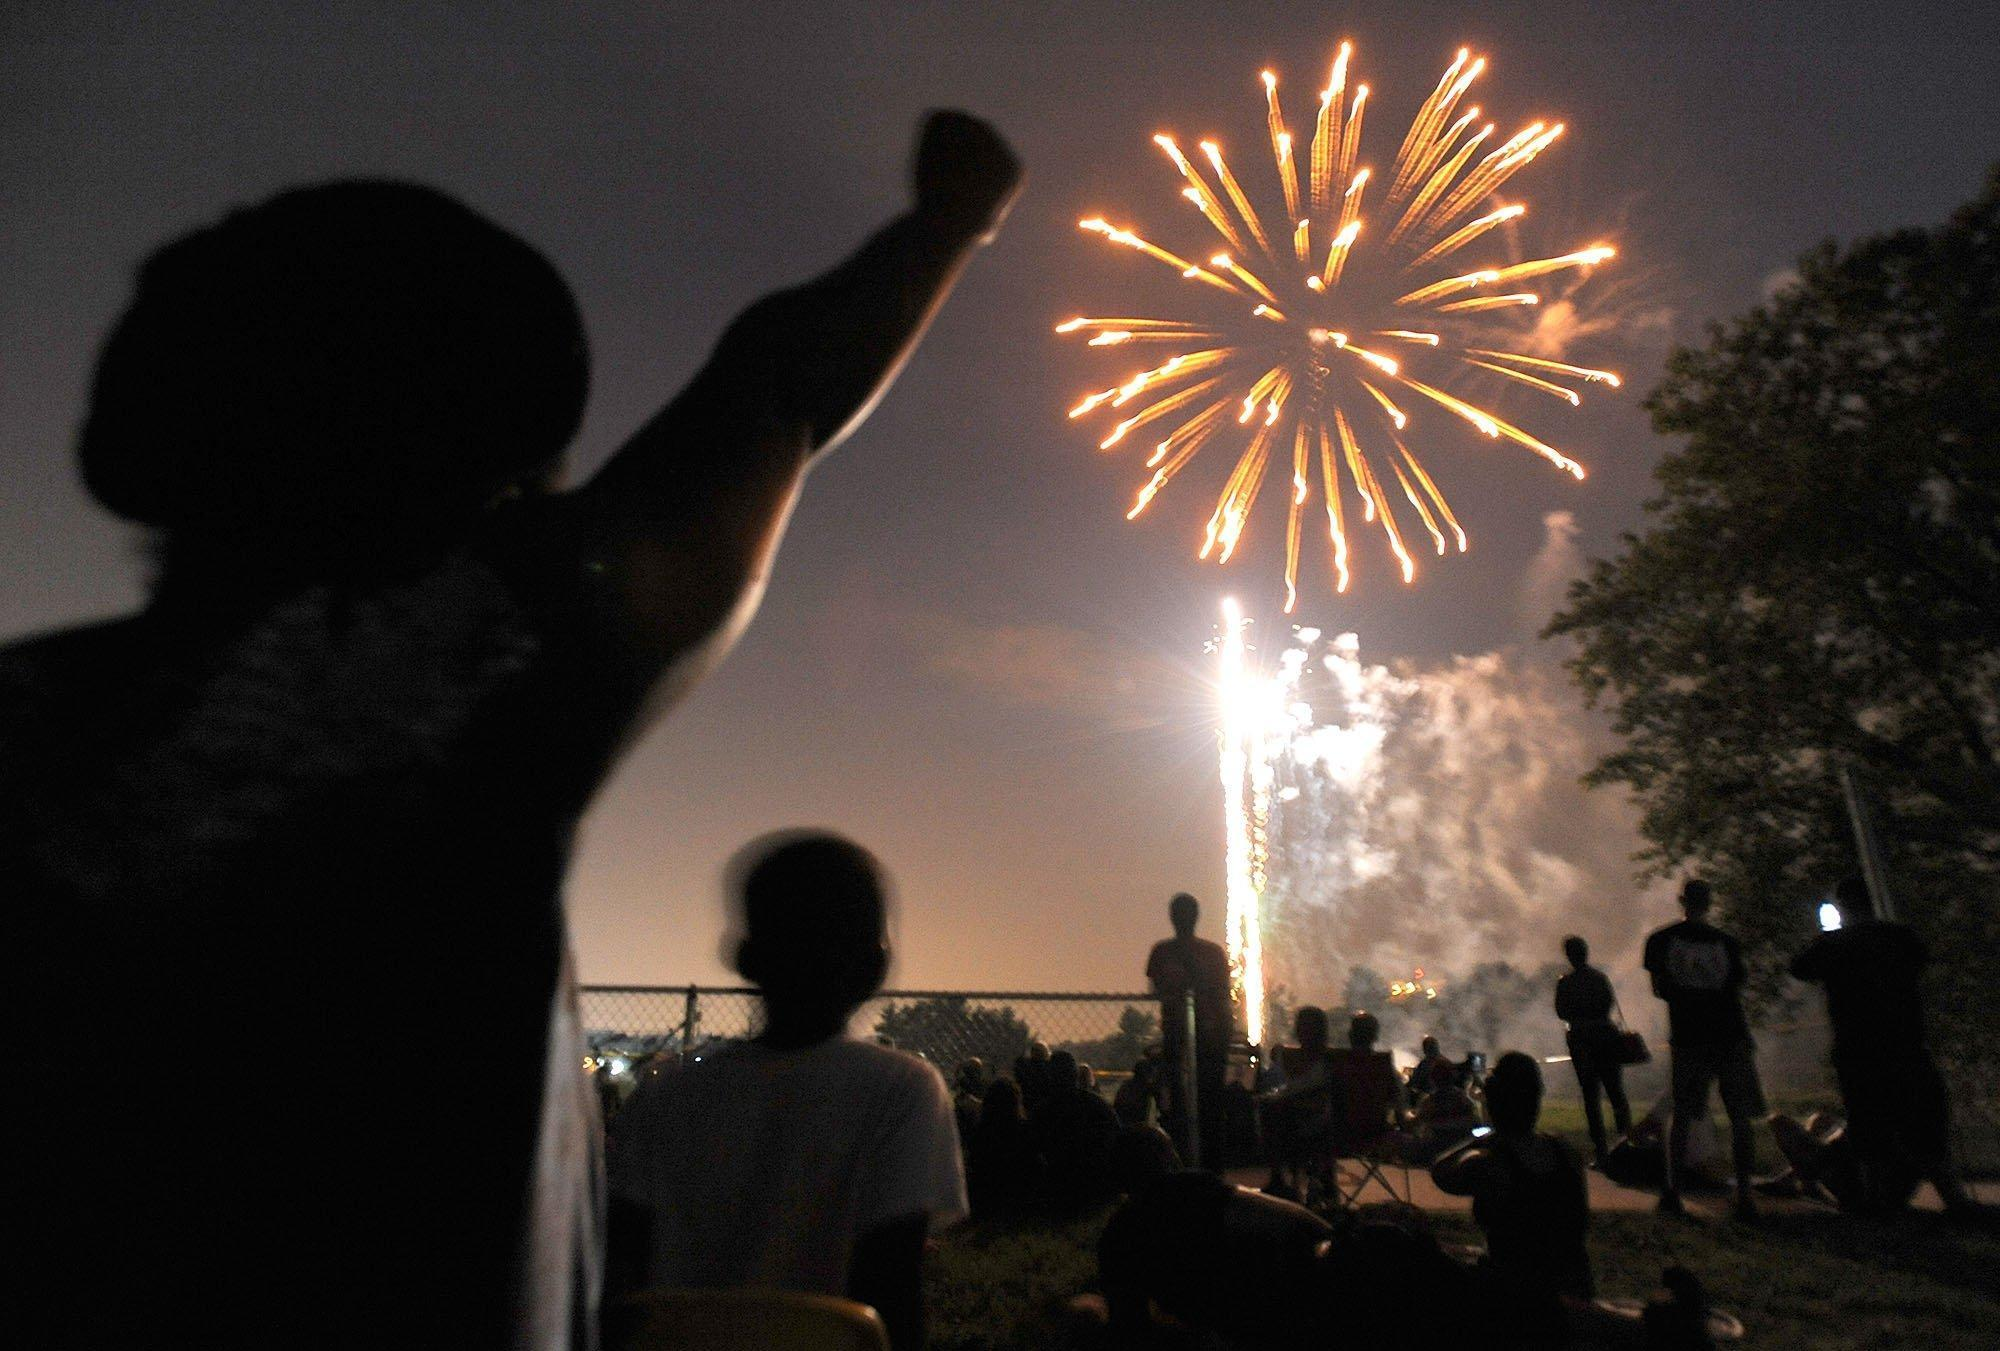 As holiday nears, Towson fireworks show still needs funding and volunteers